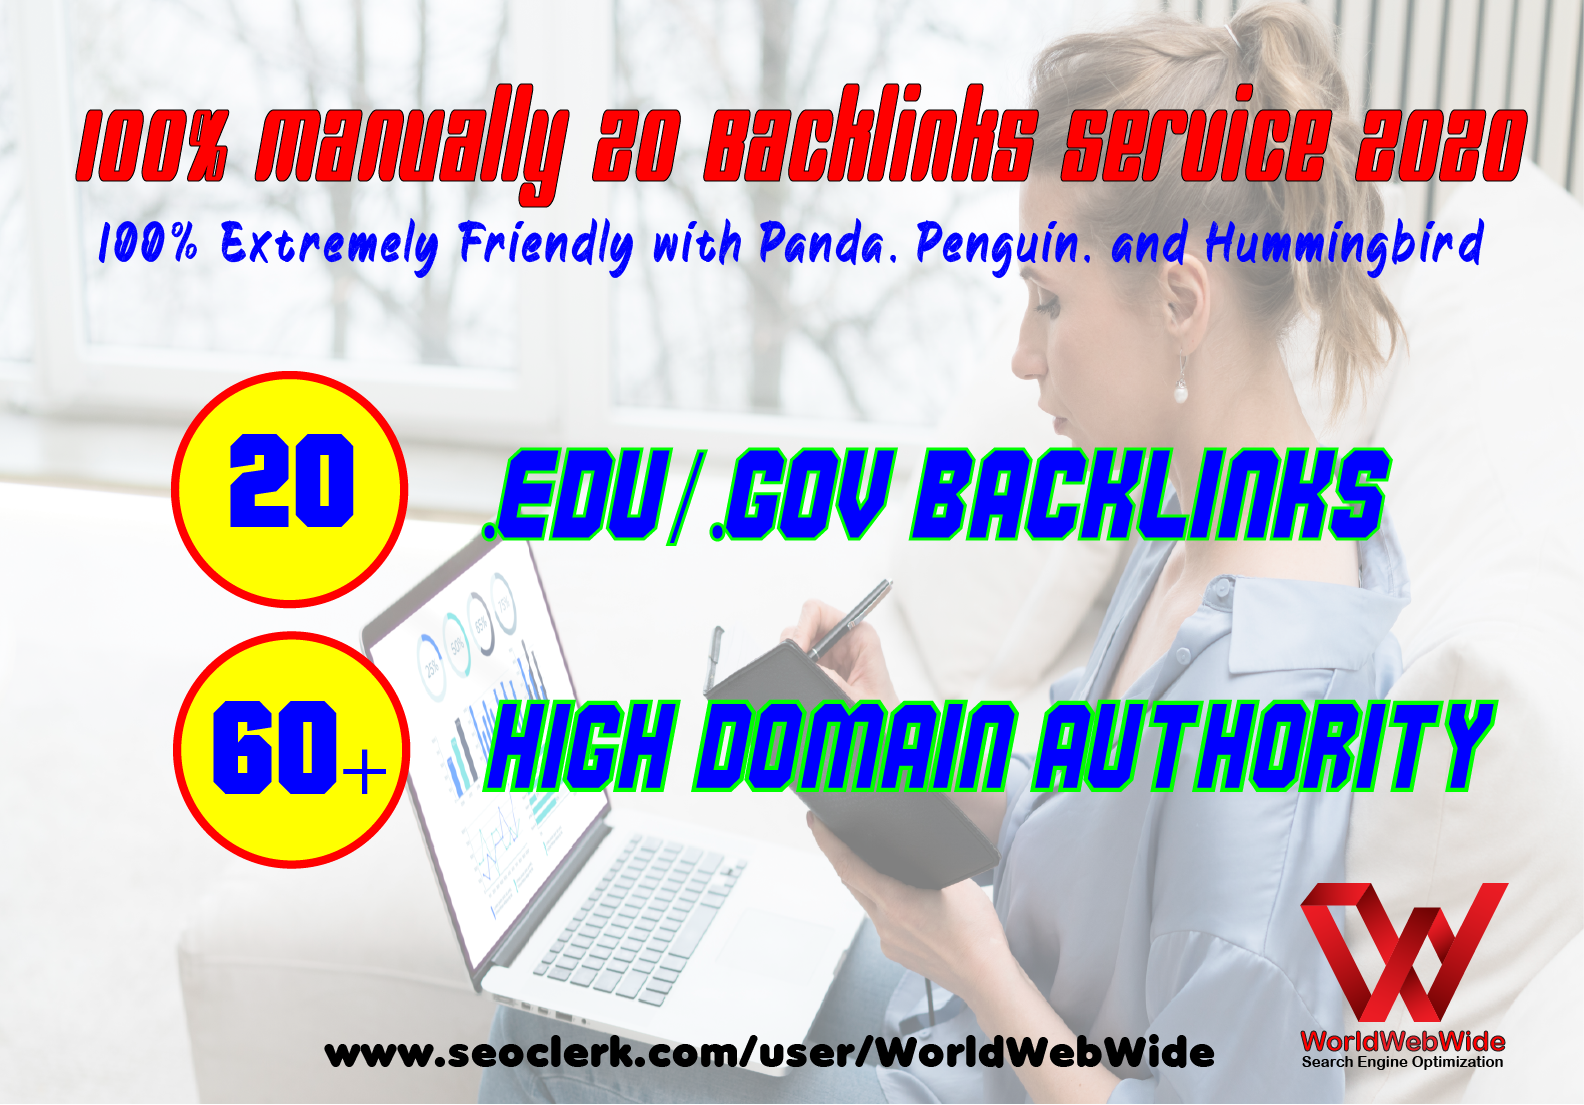 Create 20+. Edu/. Gov Safe SEO Backlinks High Authority Site to Boost Your Google Ranking